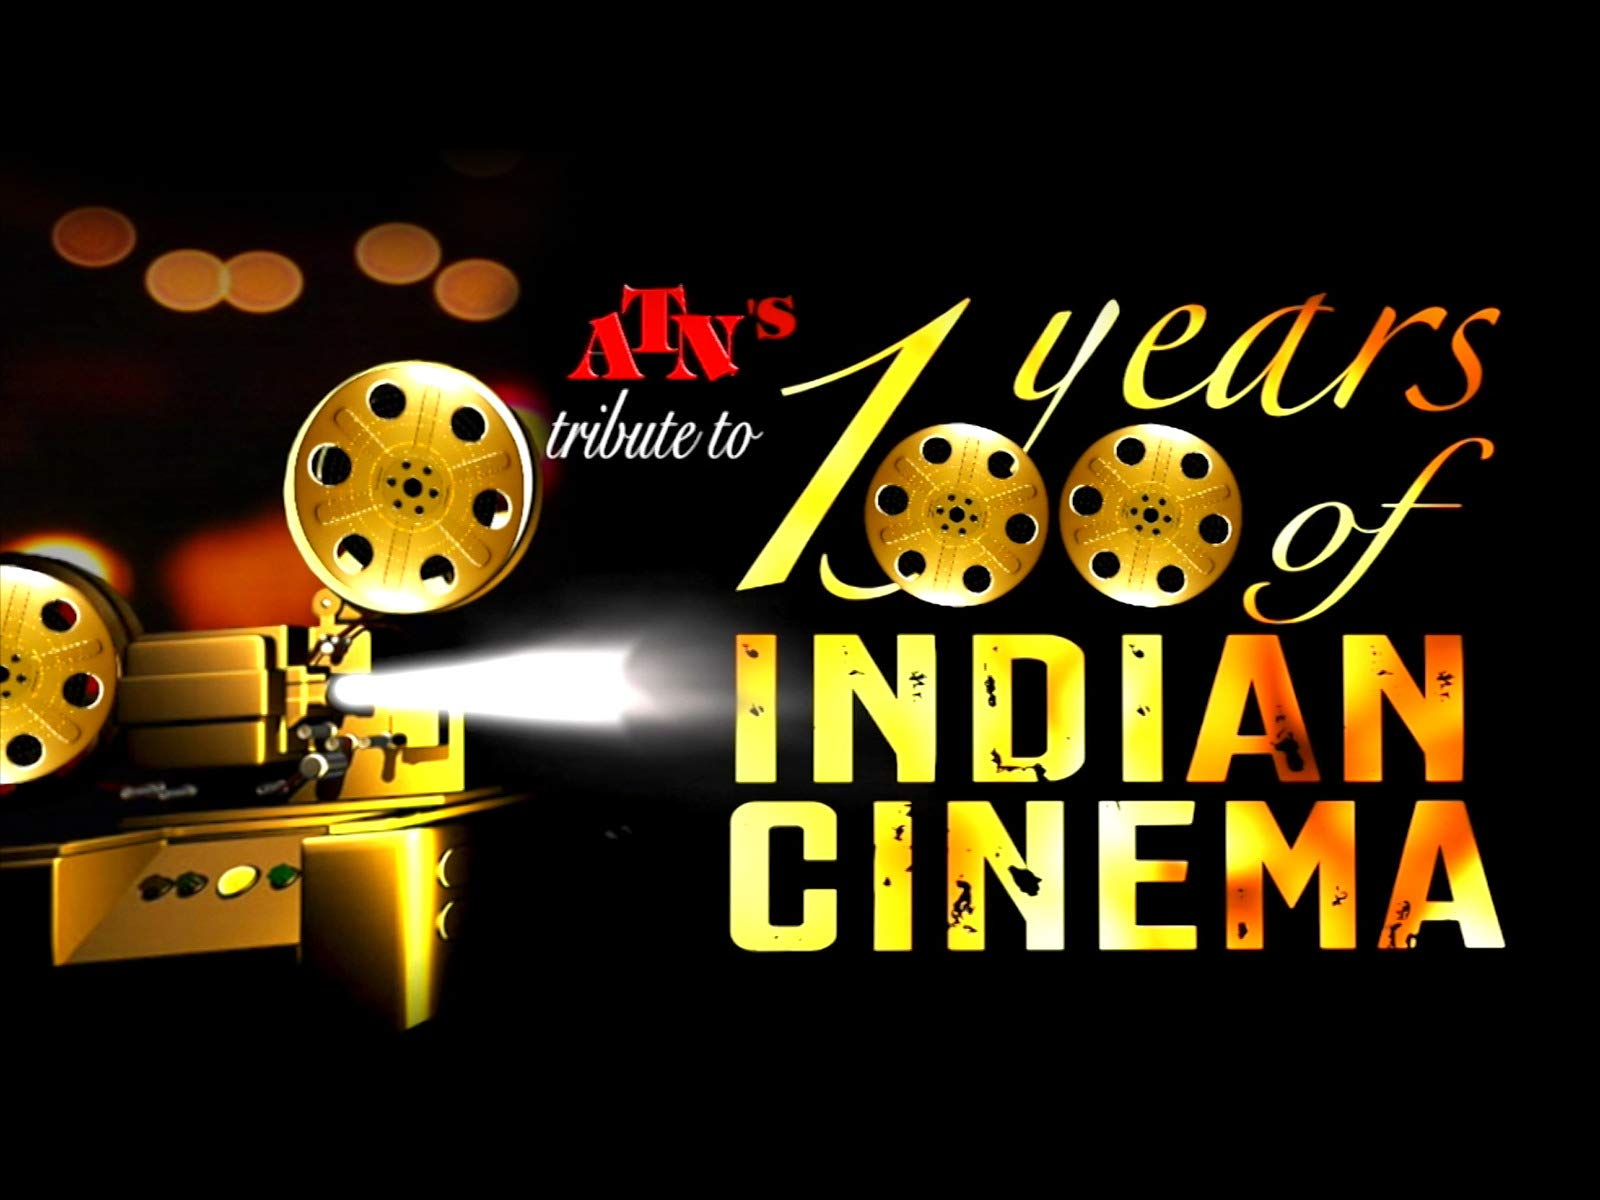 ATN's Tribute to 100 Years of Indian Cinema on Amazon Prime Instant Video UK